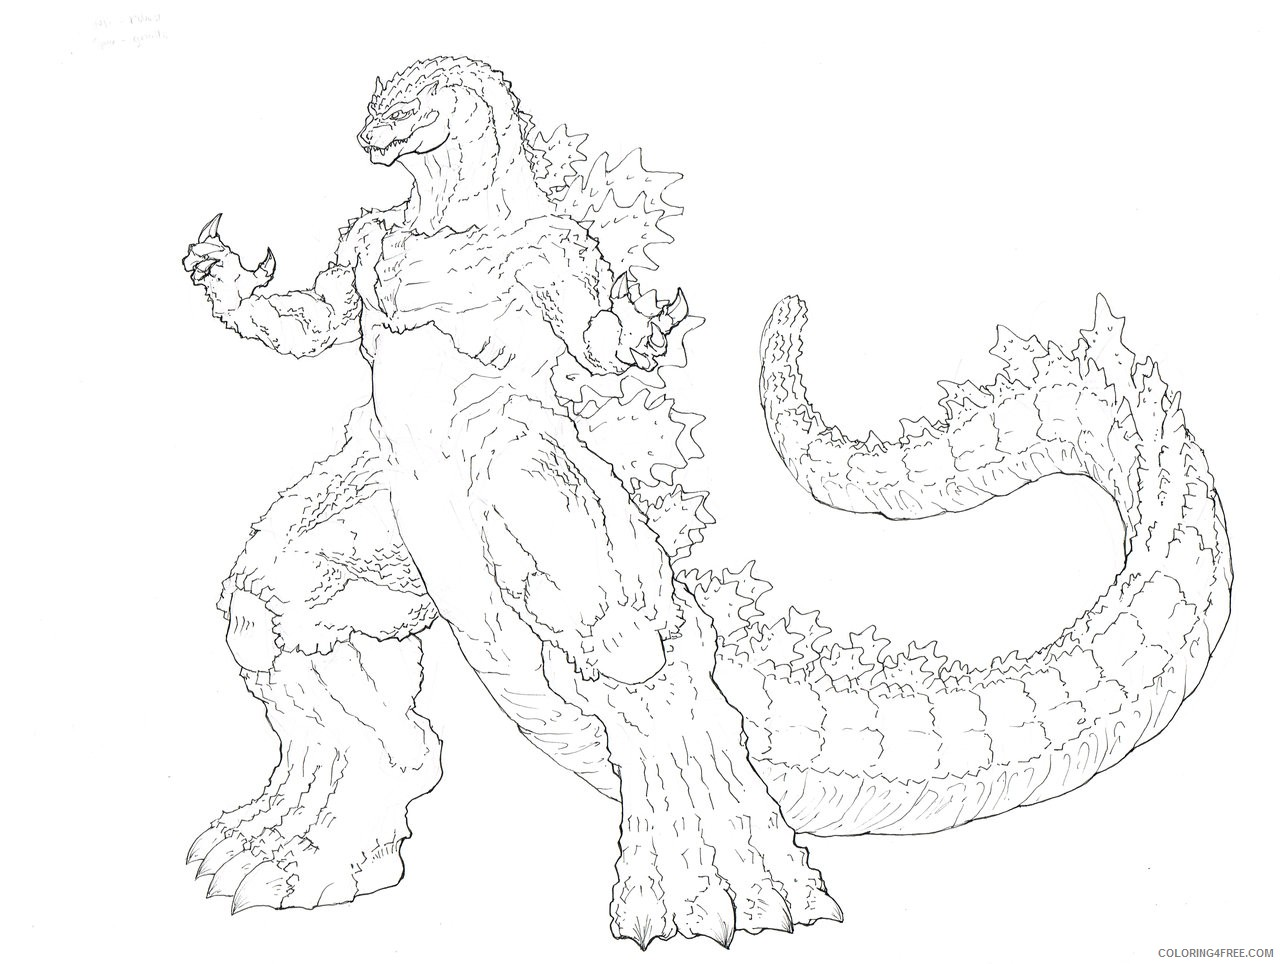 Space Godzilla Coloring Pages Coloring4free Coloring4free Com